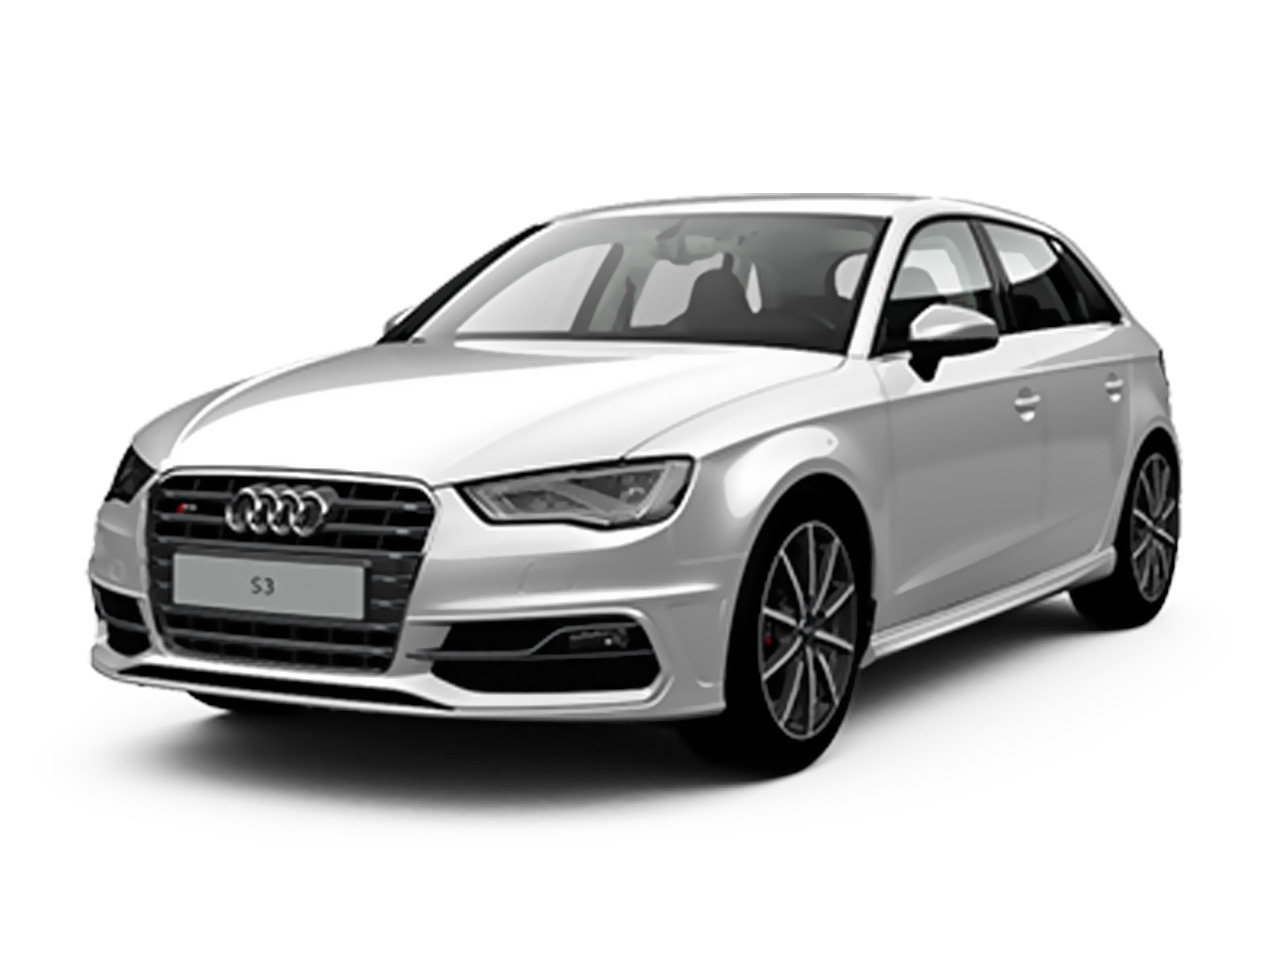 Audi In Oman Muscat New Car Prices Reviews Pictures - Audi cars q8 price list